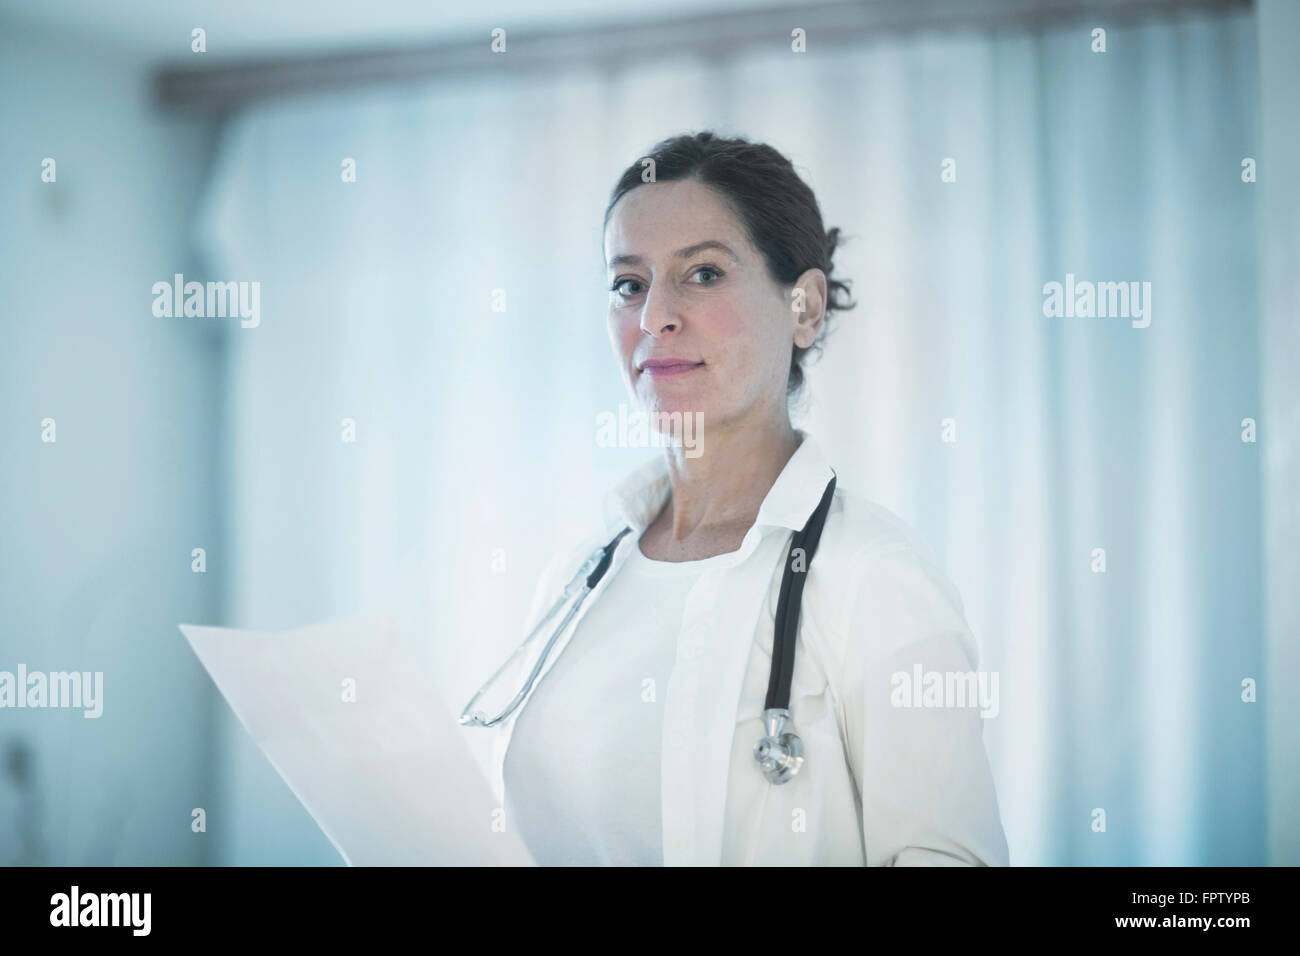 Portrait of a confident female doctor holding a medical report, Freiburg Im Breisgau, Baden-Württemberg, Germany - Stock Image